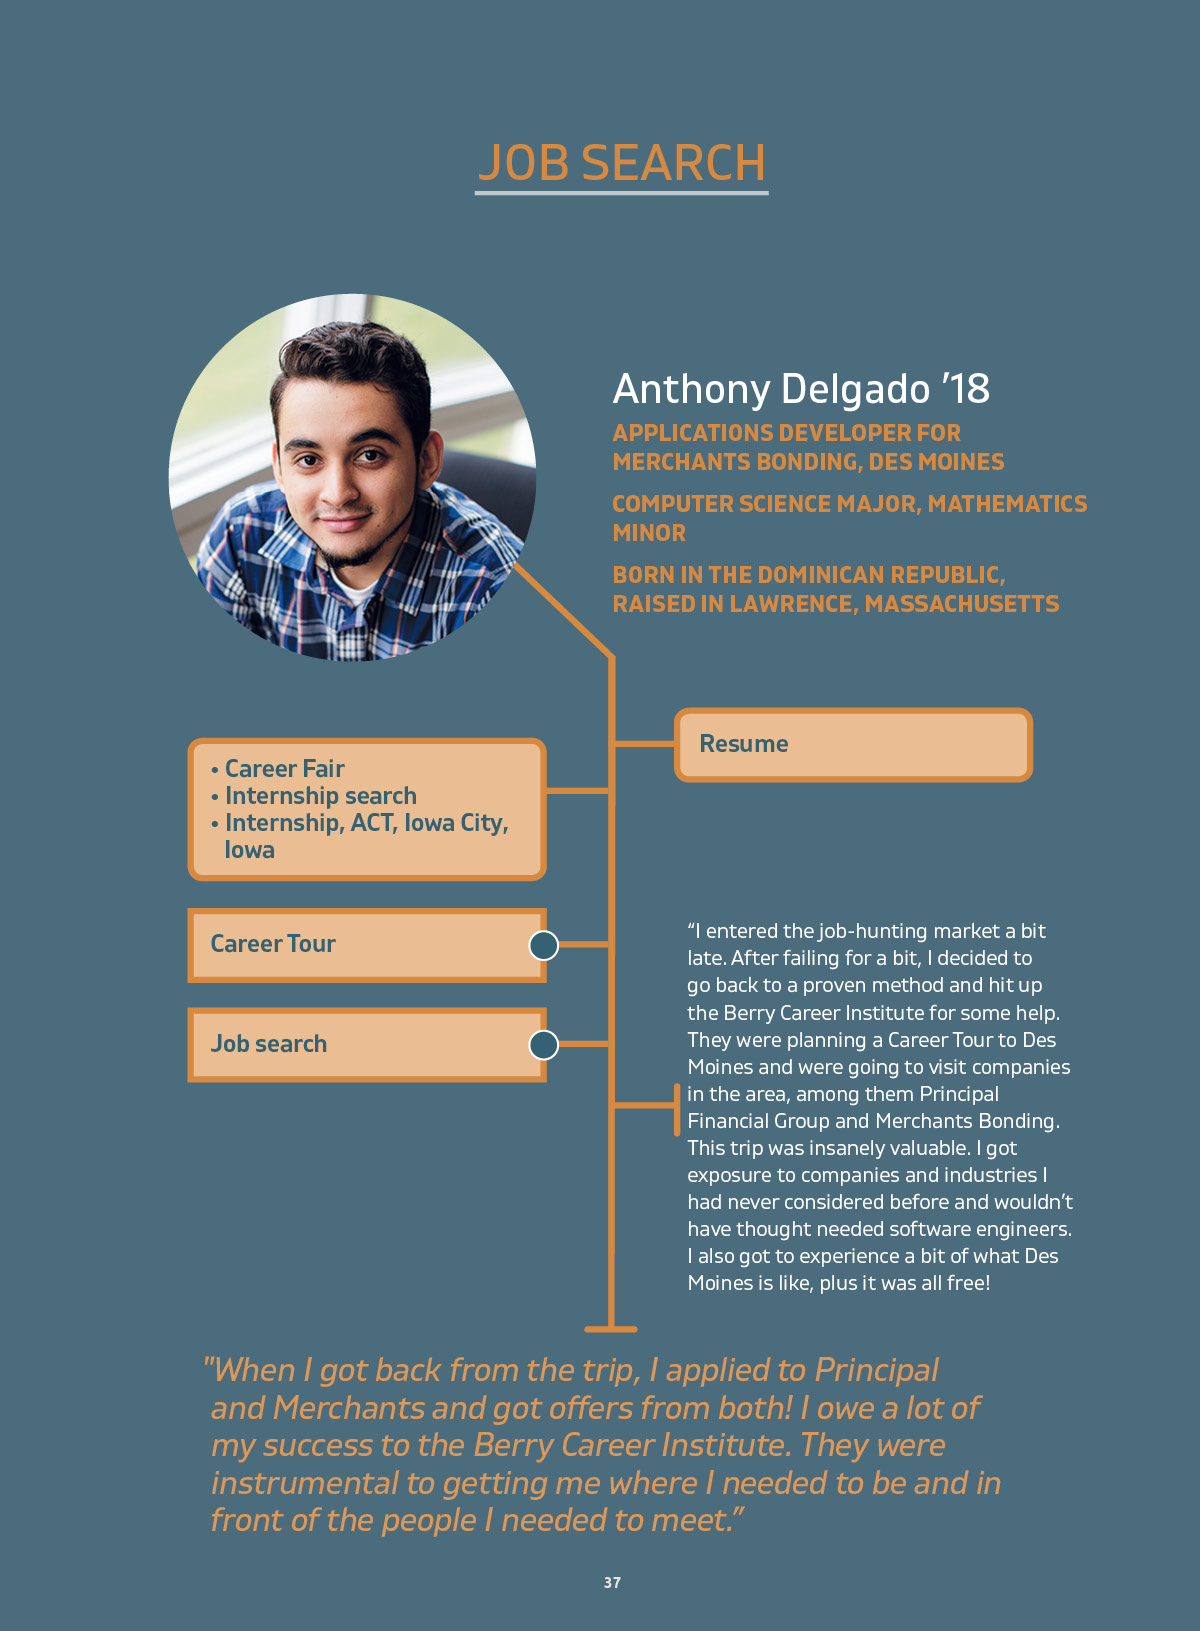 Anthony Delgado '18: Job search